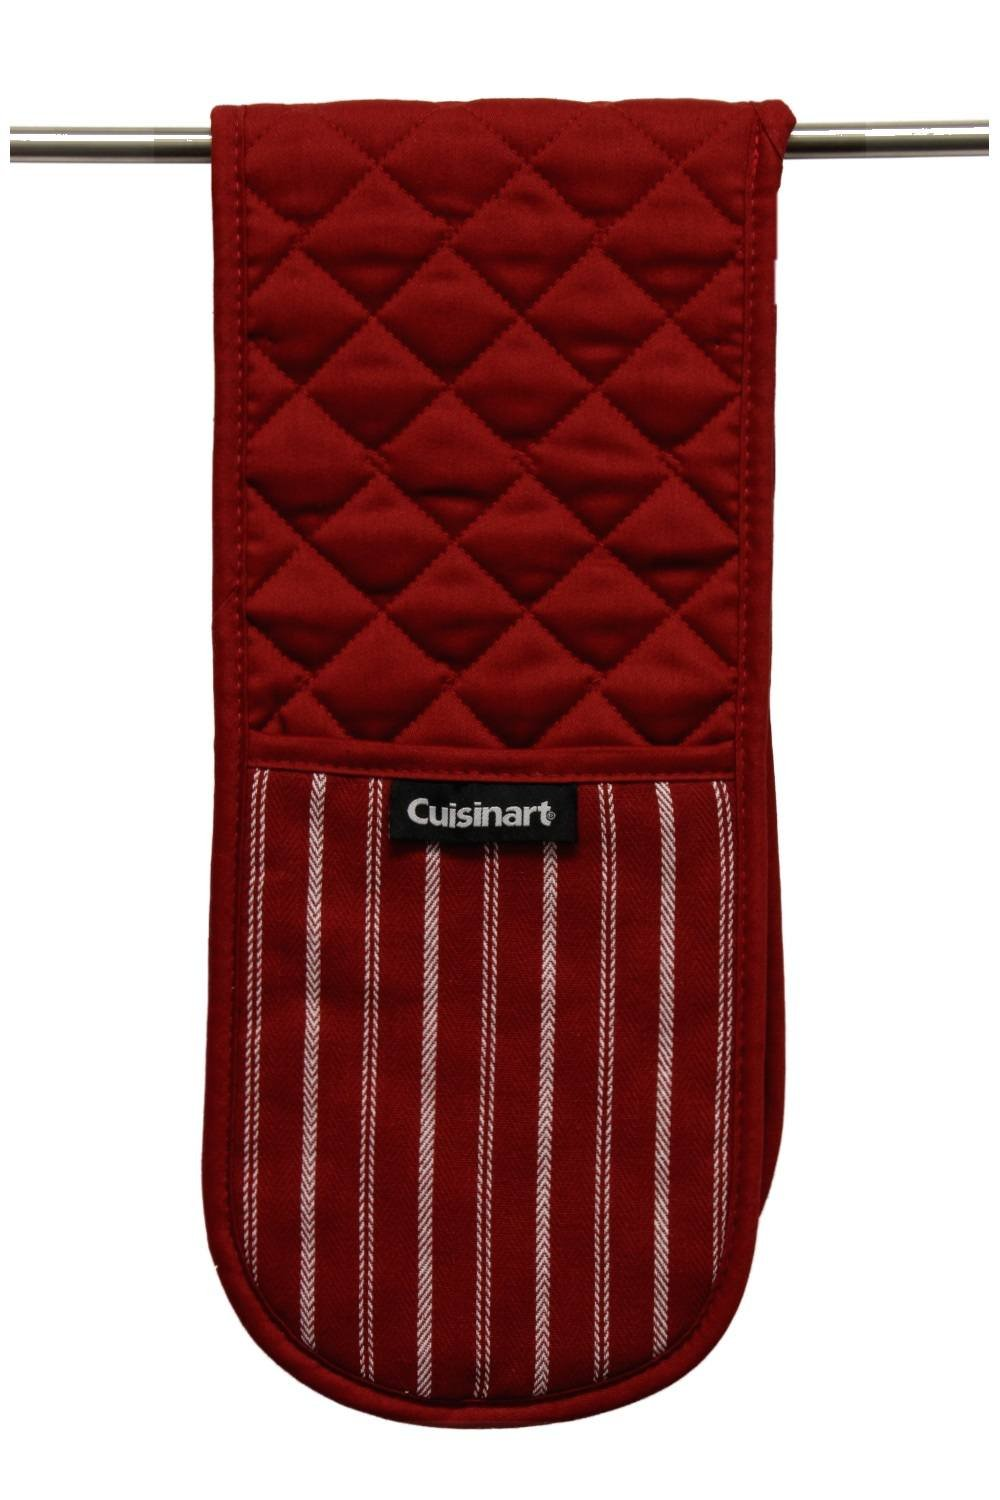 """Cuisinart Double Oven Mitt Glove/Moppine, Quilted Heat Resistant Kitchen Accessory, Twill Stripe, 35"""" x 7.5"""", Great for Cooking, Baking, and Handling Hot Pots & Pans- Red Dahlia by Cuisinart (Image #3)"""